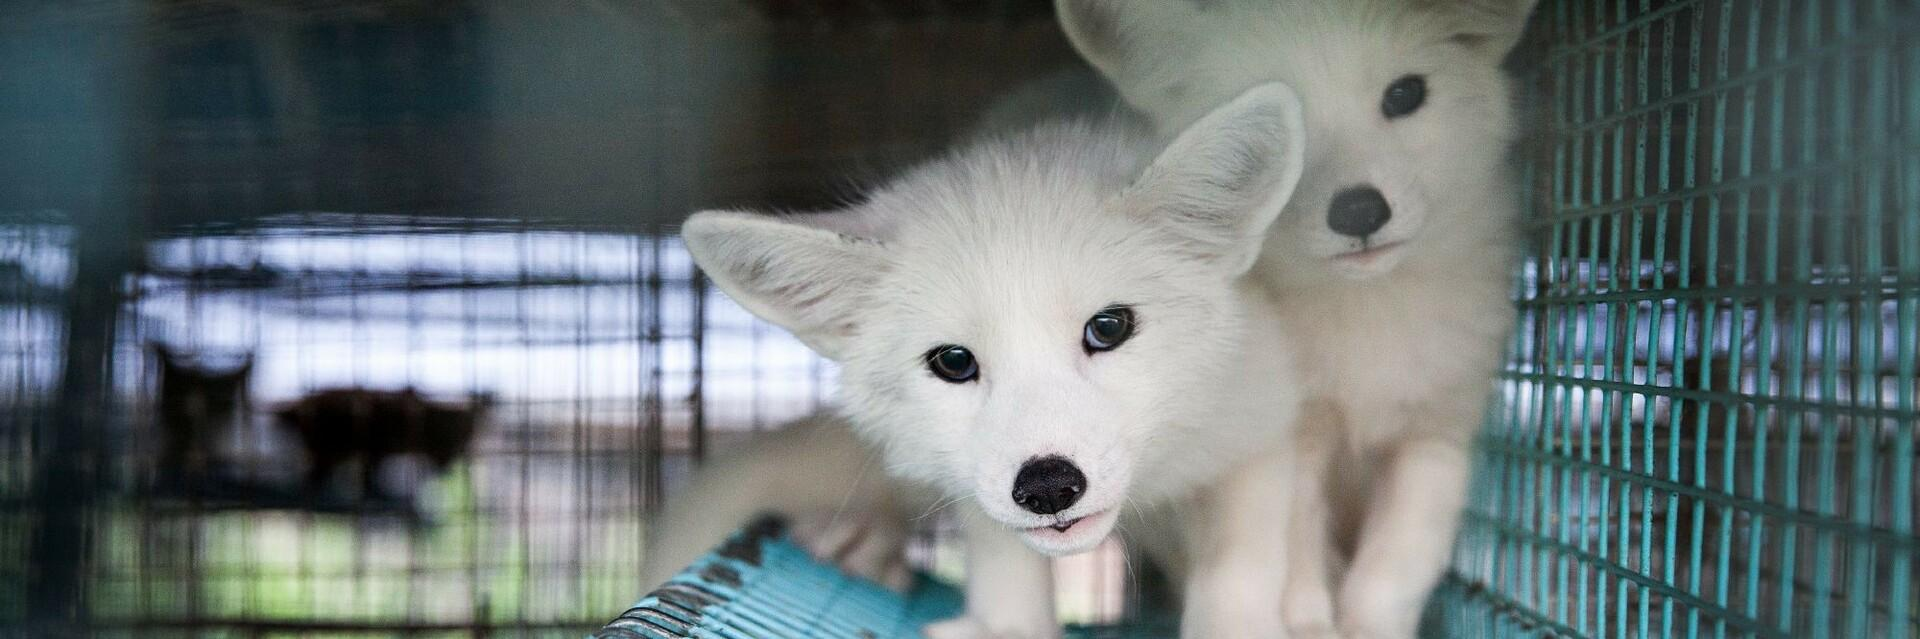 cage-white-foxes